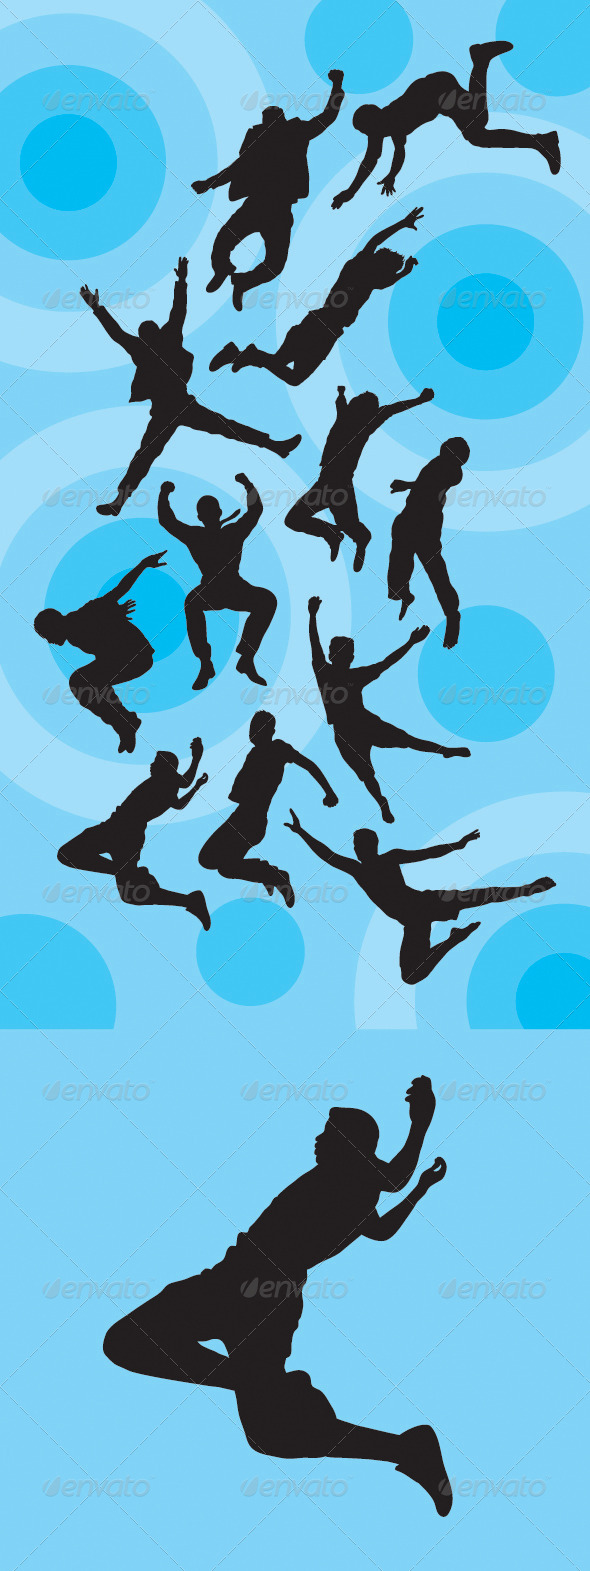 GraphicRiver Man Jumping Silhouettes 4916035